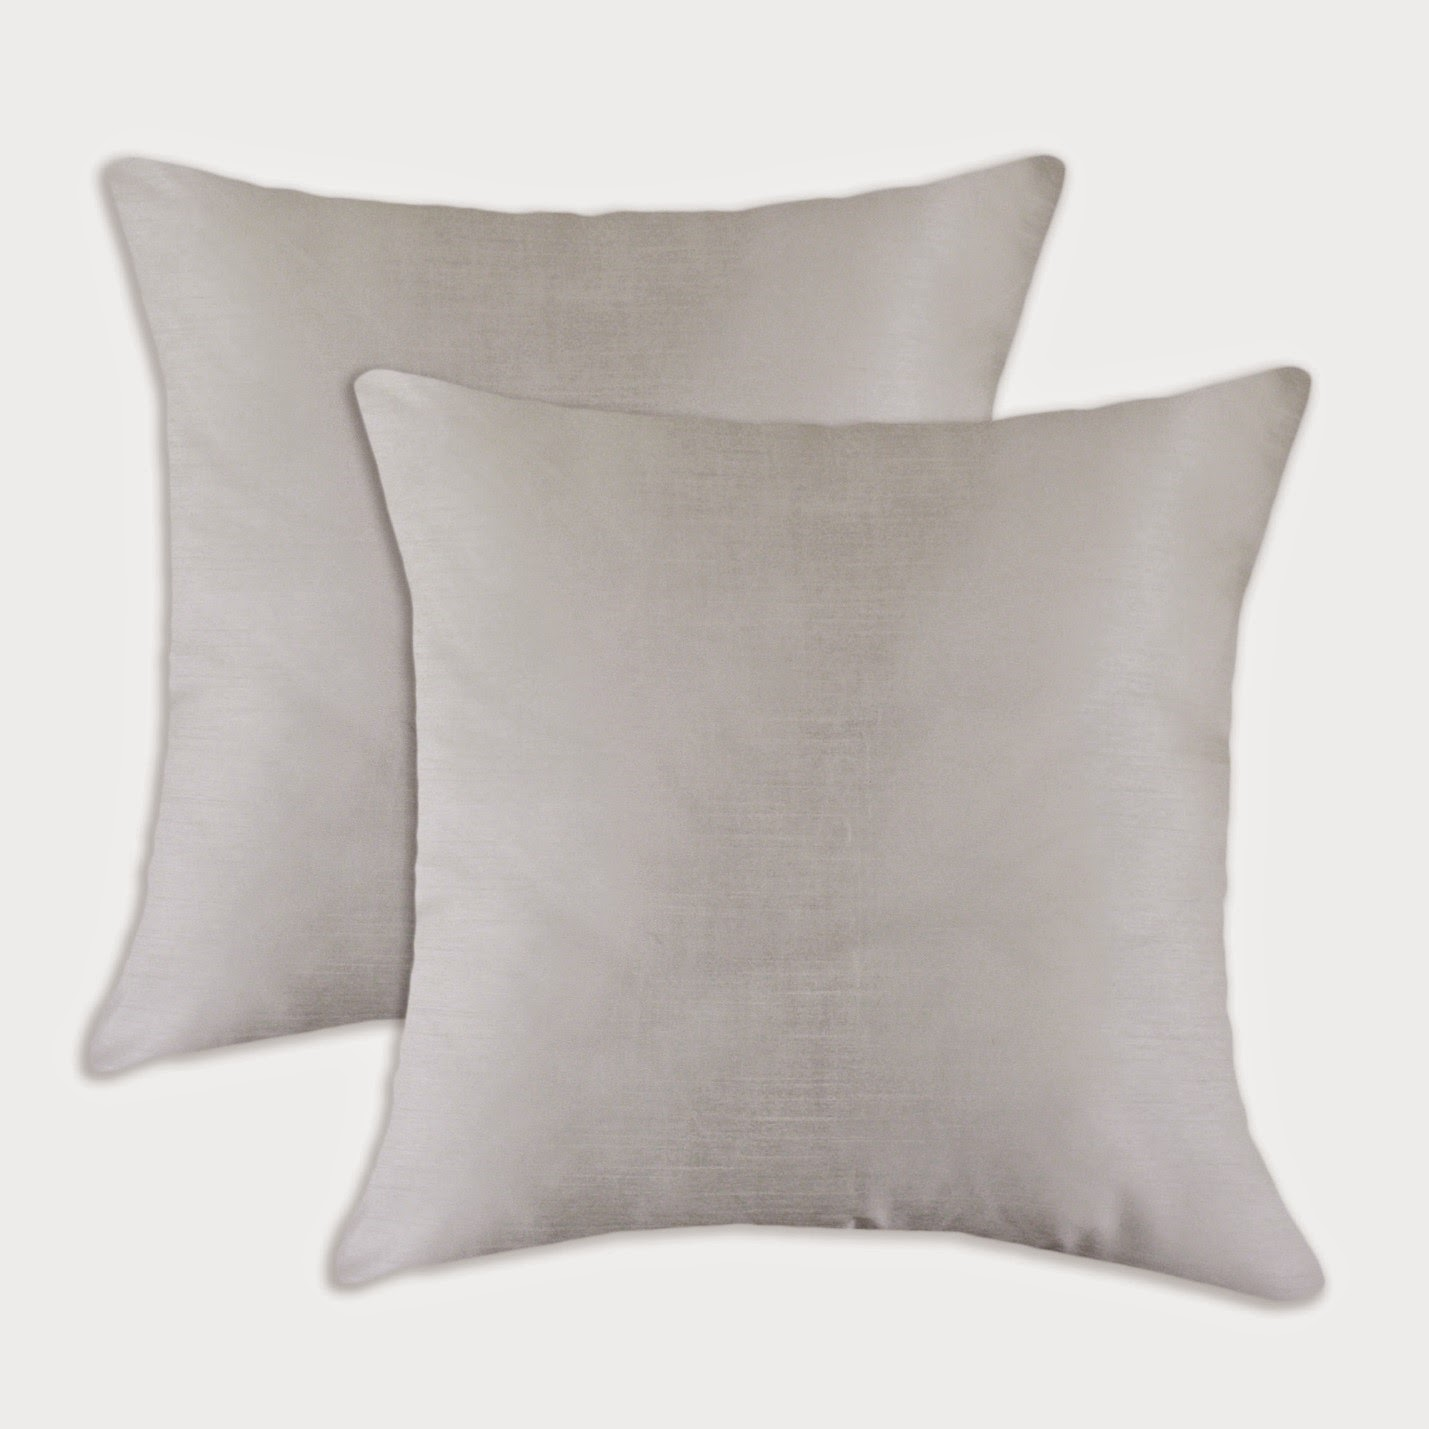 http://www.wayfair.com/Chooty-and-Co-Shantung-Polyester-Pillow-cset17k-CHY4030.html?piid%5B0%5D=10352743